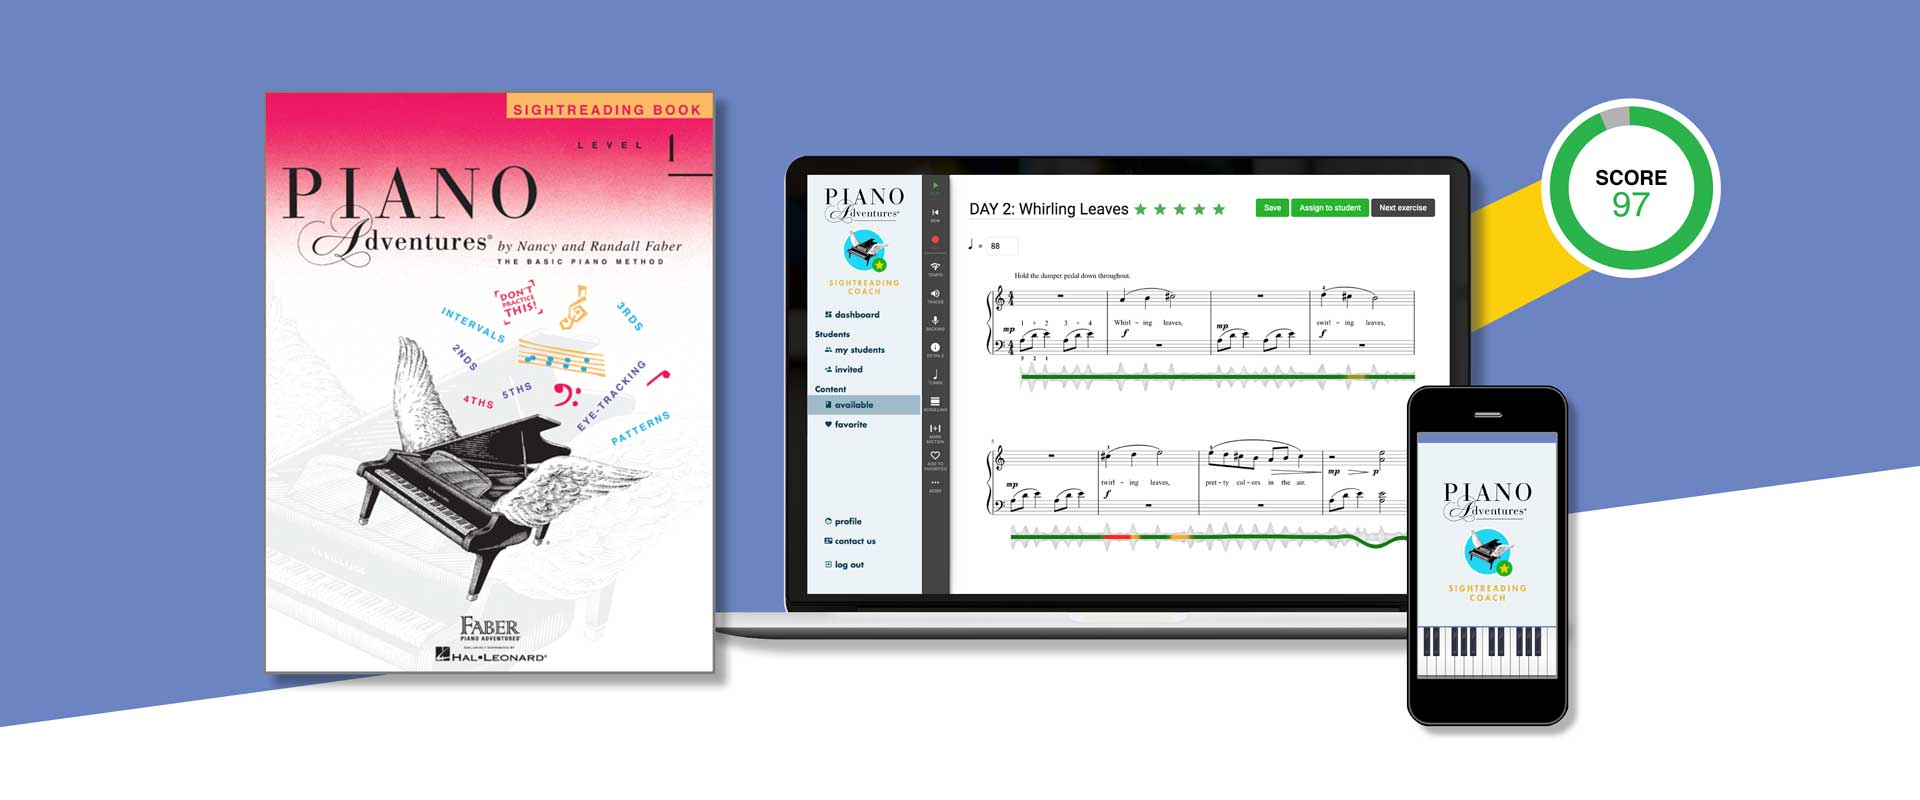 PianoAdventureSightreadingCoach